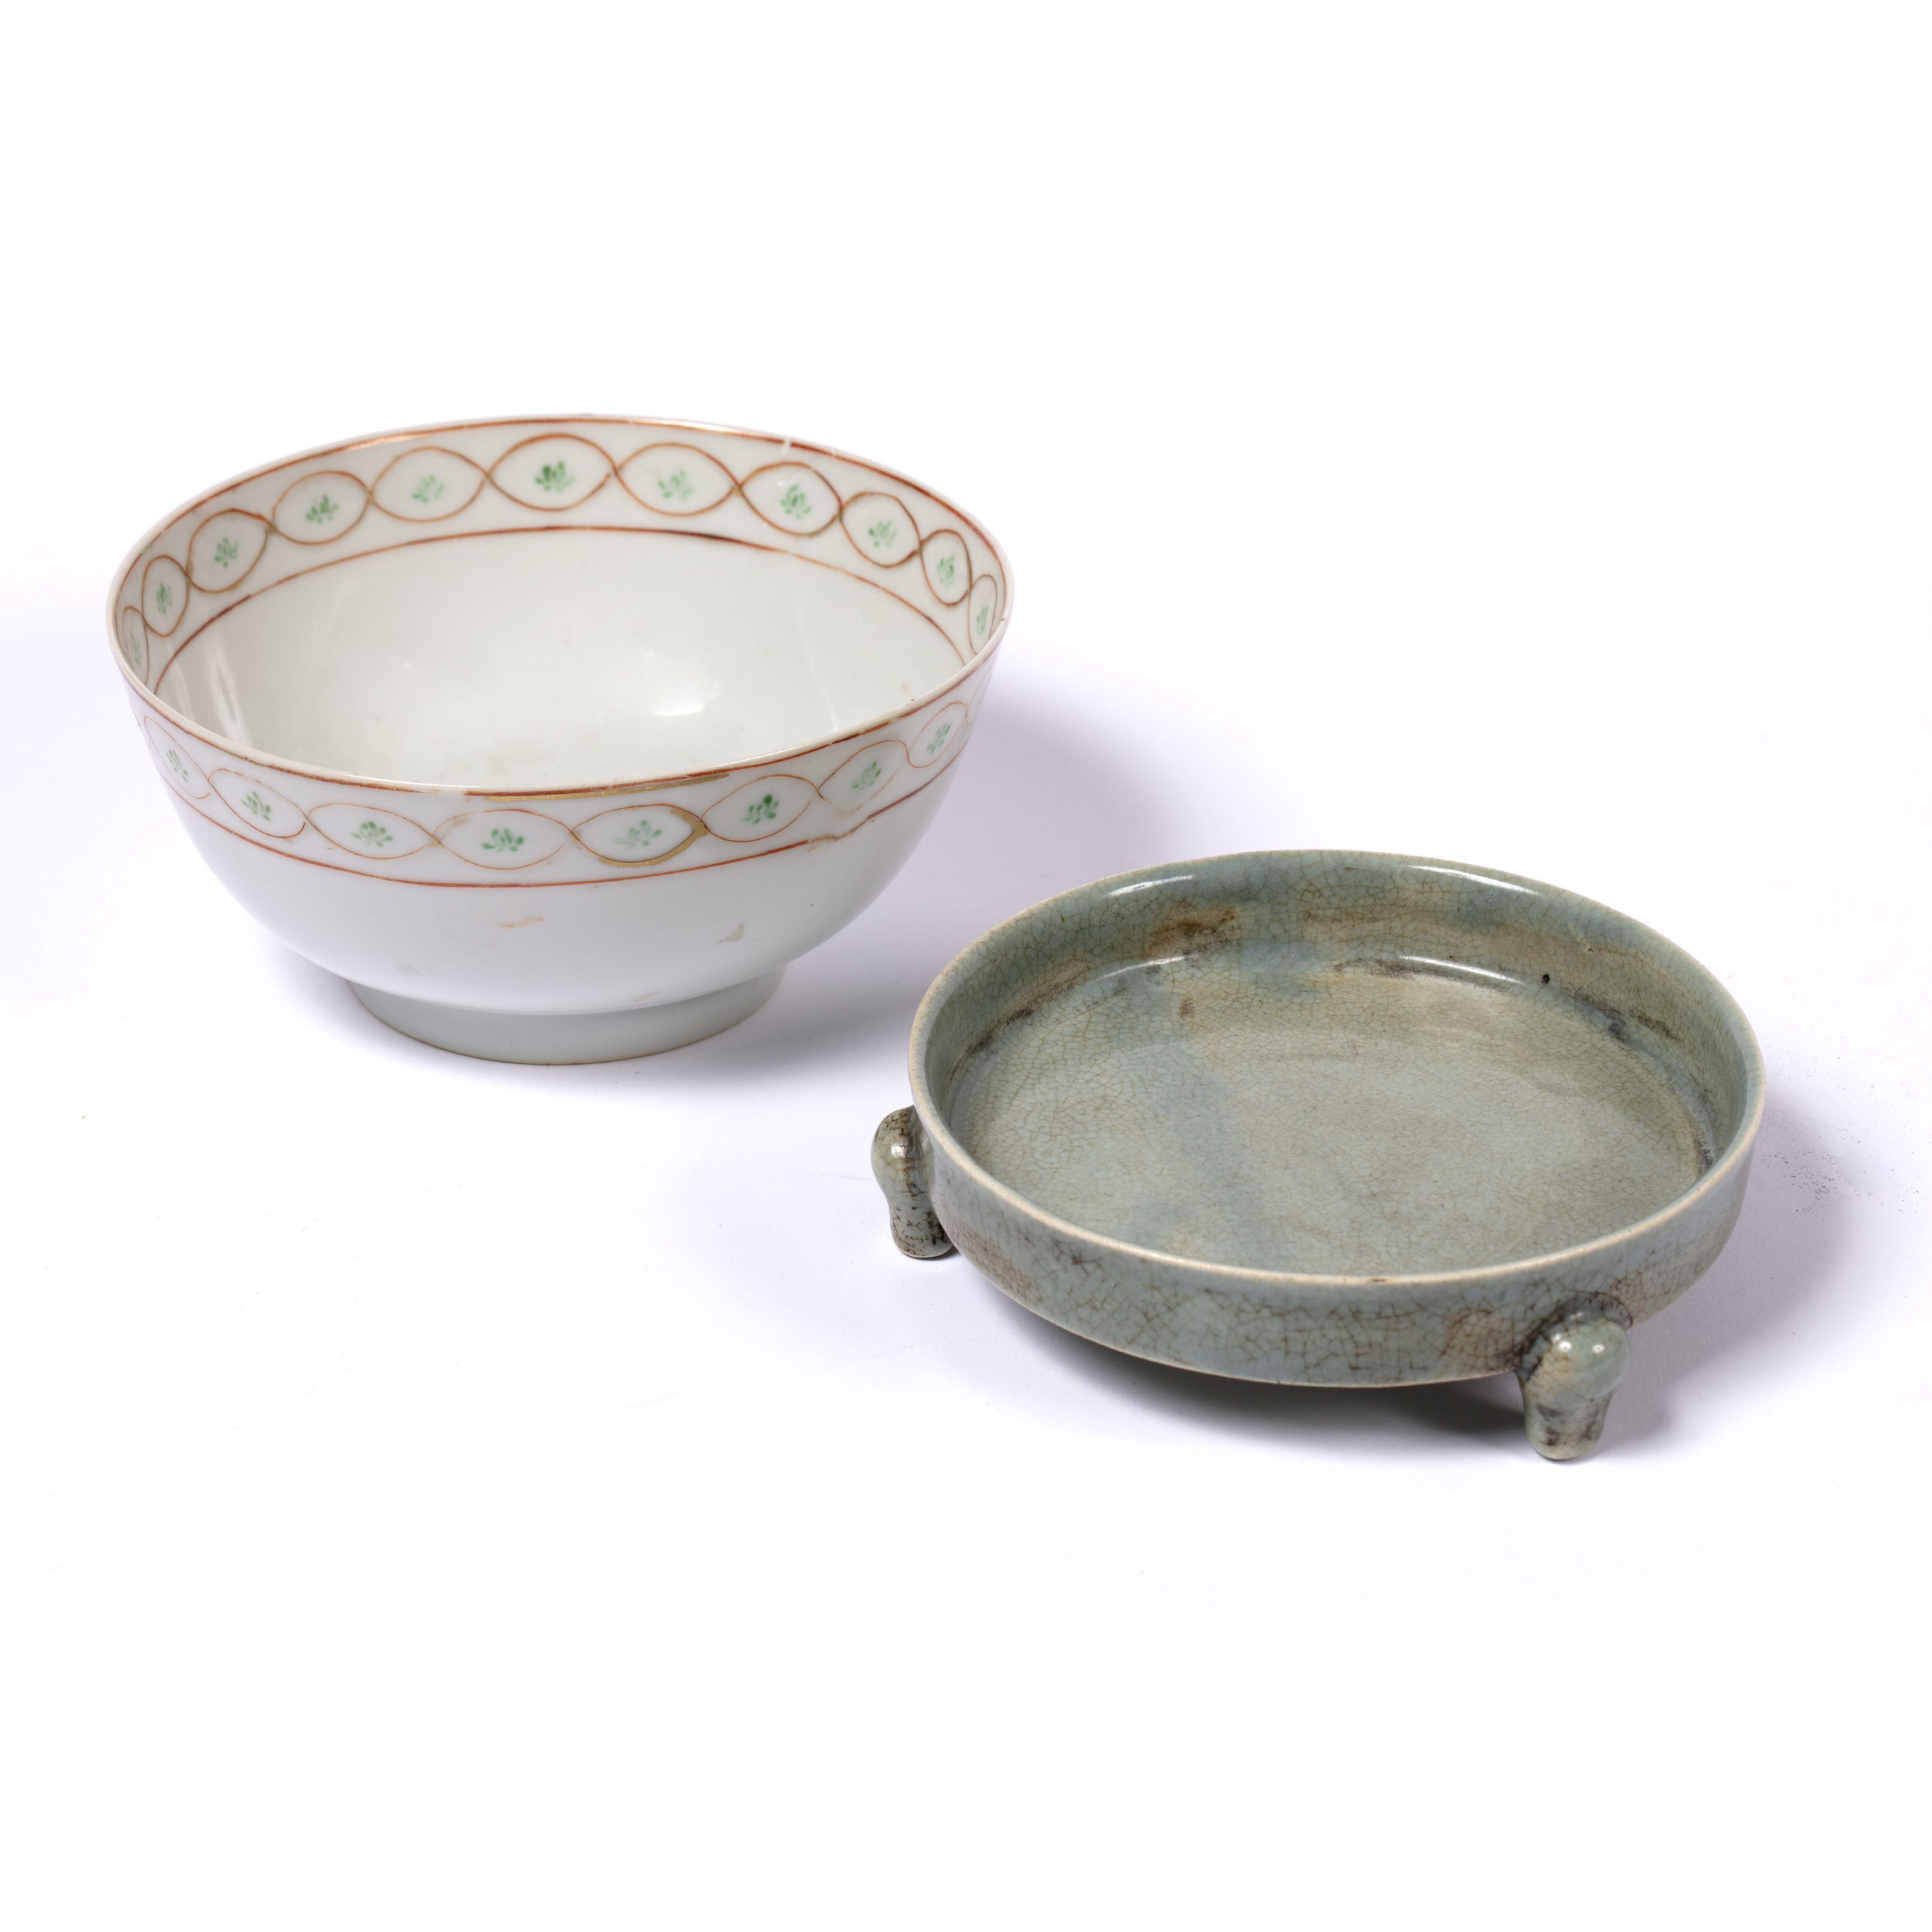 Porcelain sweetmeat dish Chinese, Qianlong of circular form and greenish celadon-type glaze, with